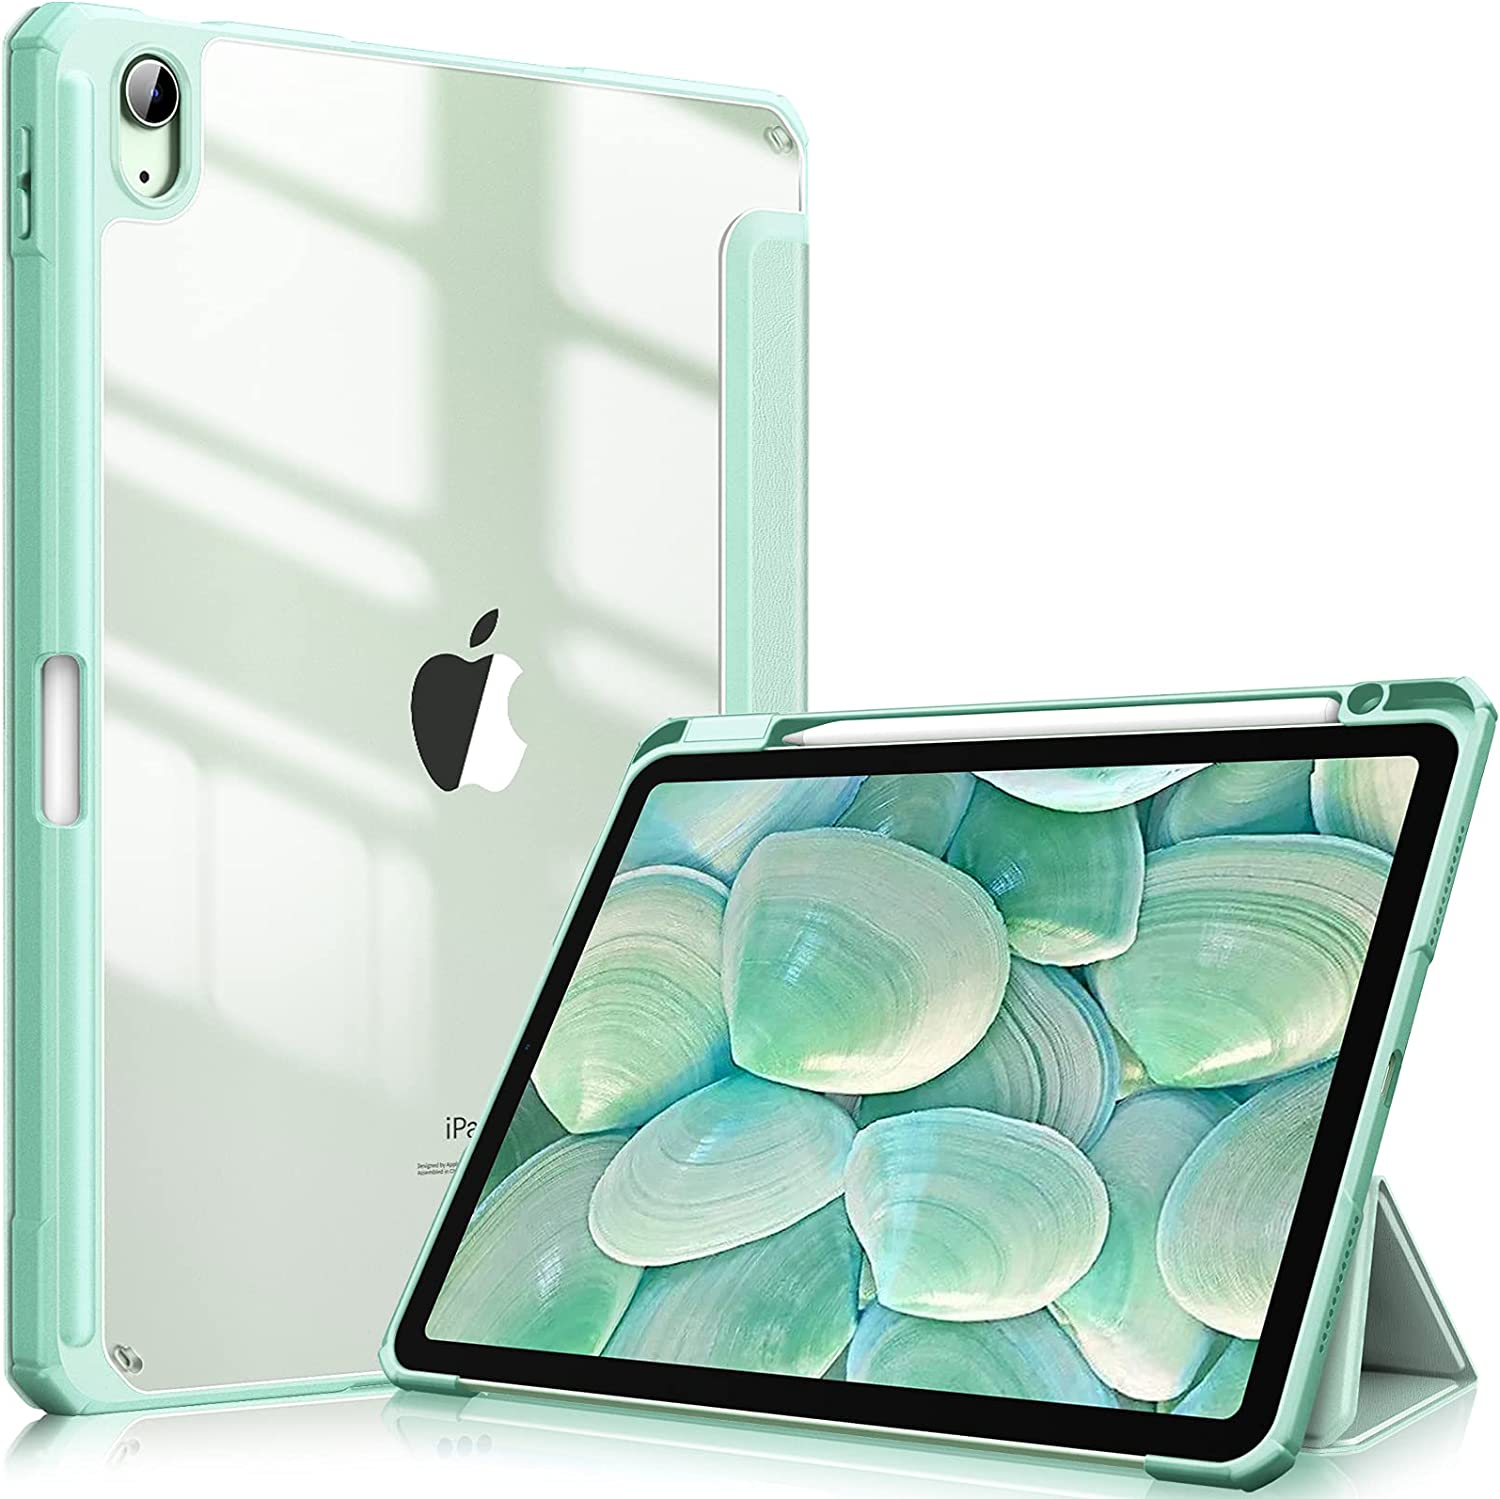 Fintie Hybrid Slim Case for iPad Air 4th Generation 2020 - [Built-in Pencil Holder] Shockproof Cover with Clear Transparent Back Shell, Auto Wake/Sleep for iPad Air 4 10.9 Inch, Green